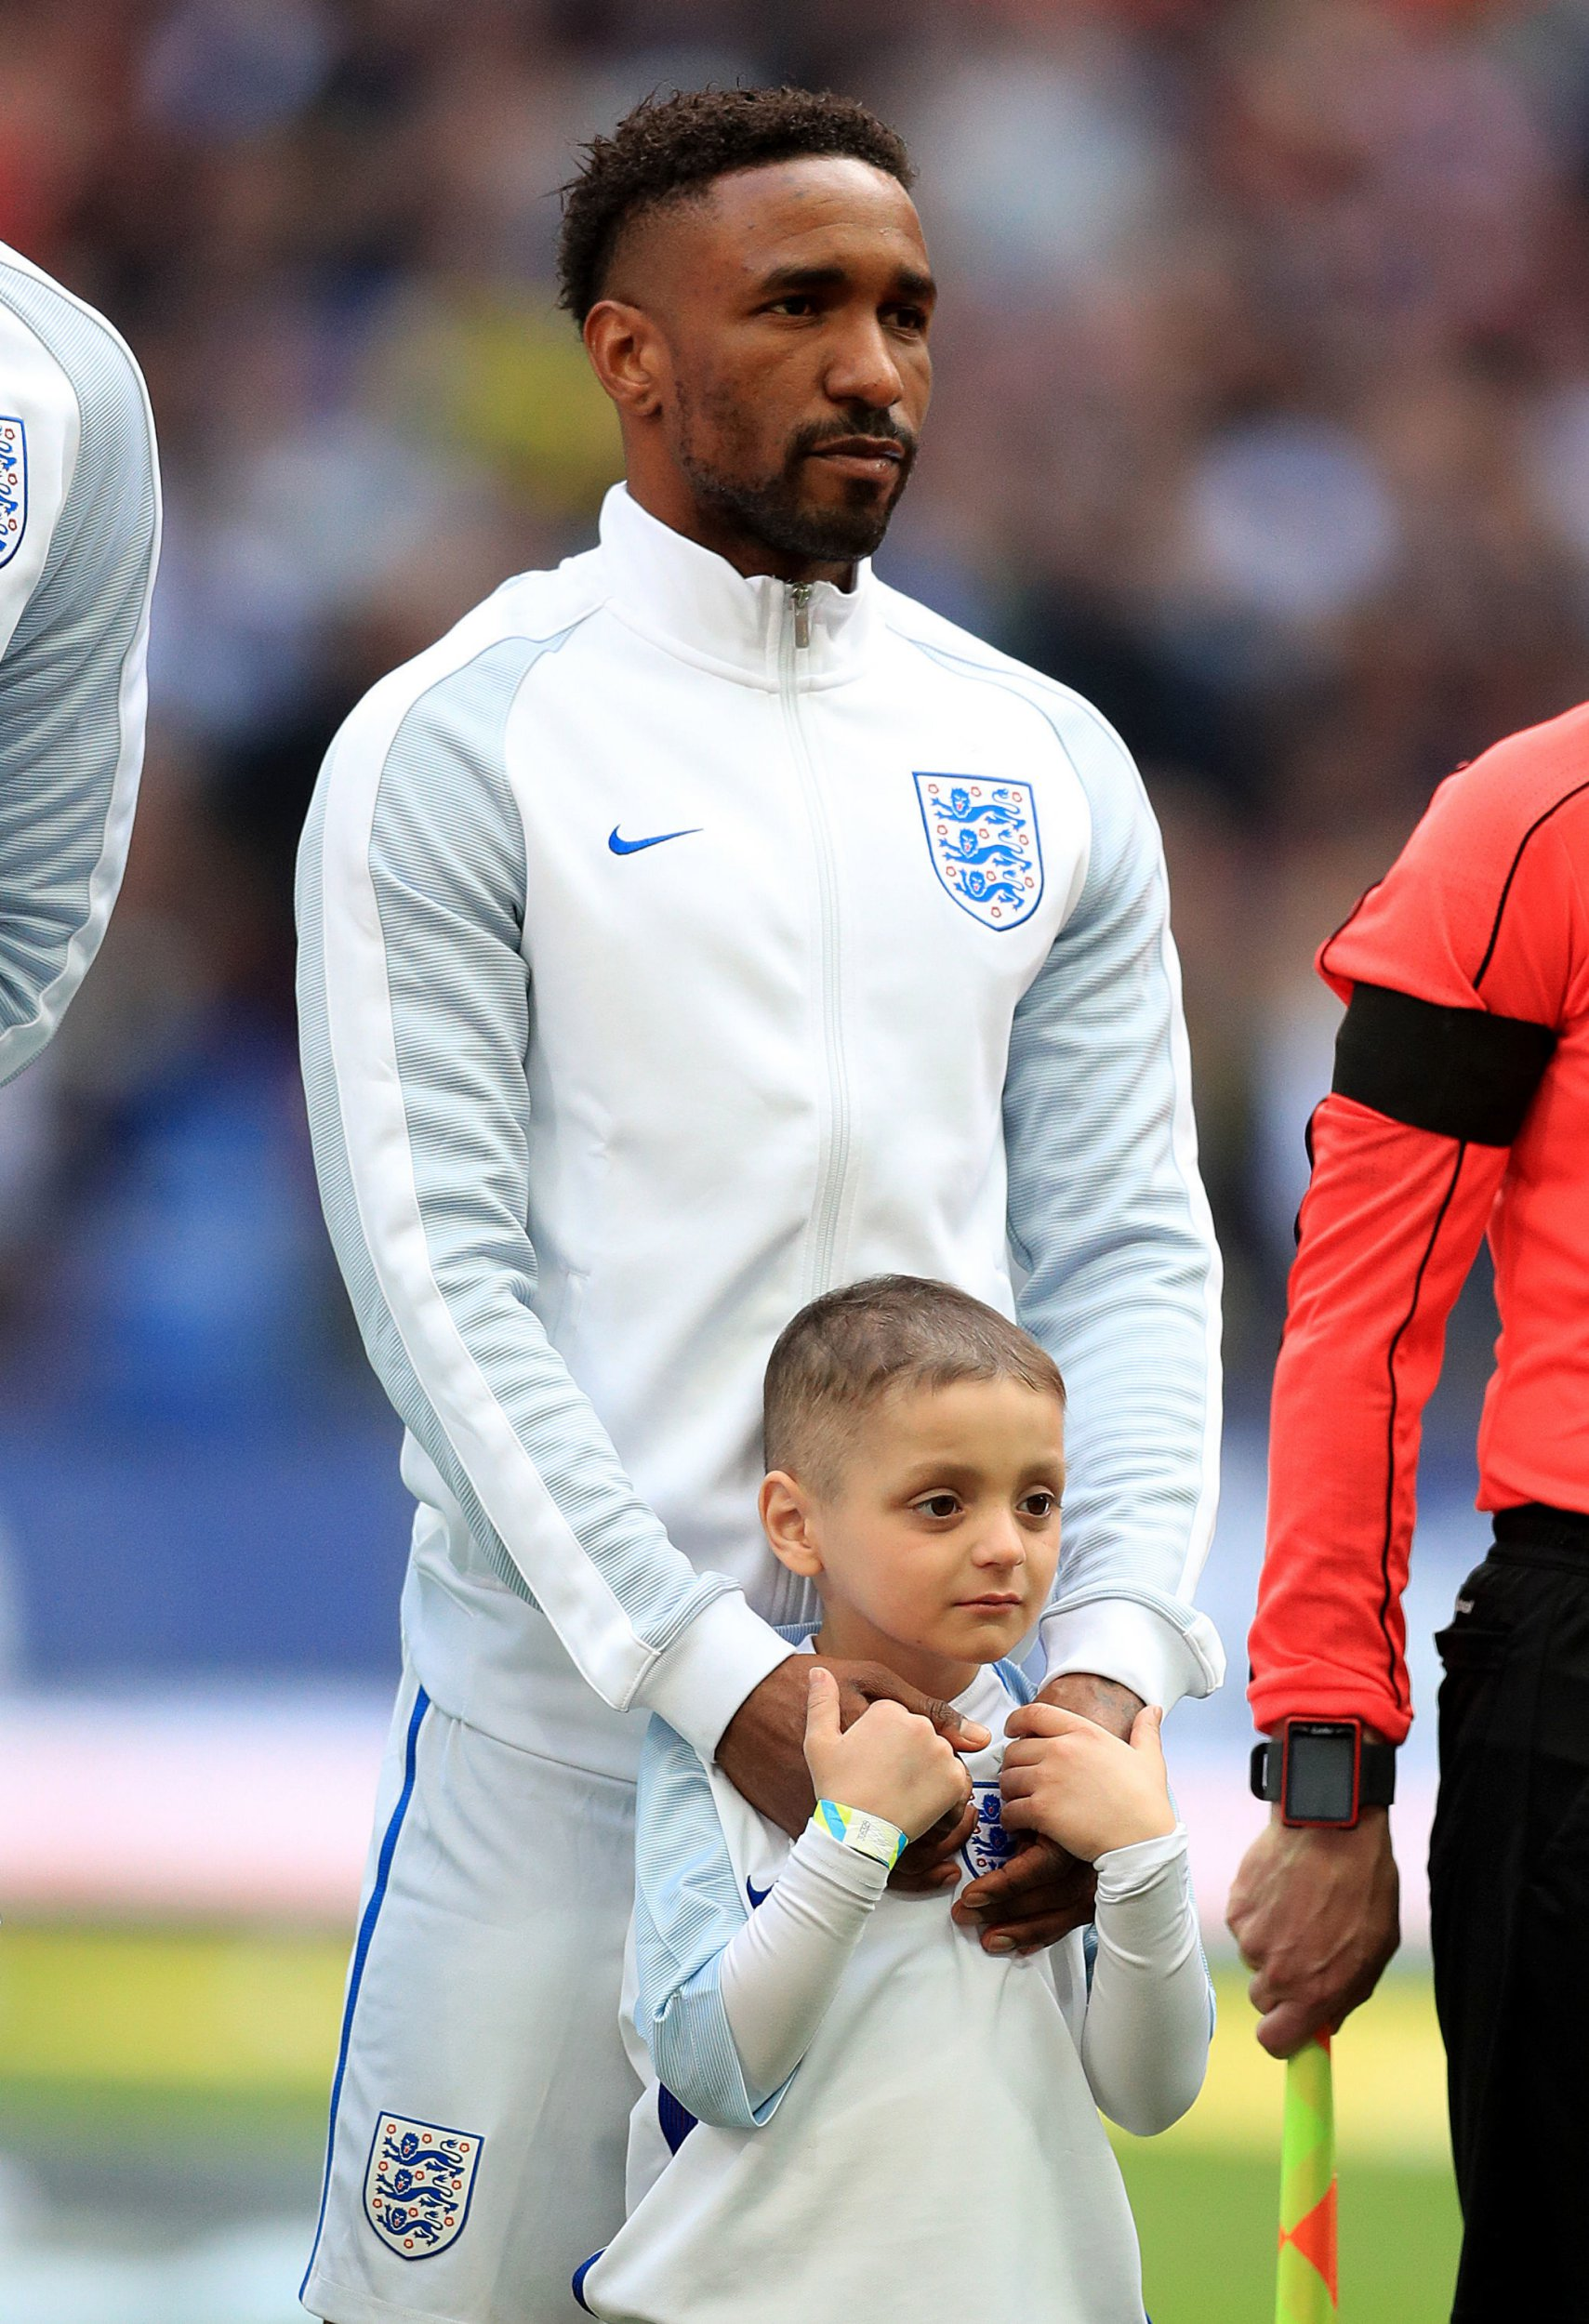 File photo dated 26-03-2017 of England's Jermain Defoe with mascot Bradley Lowery during the World Cup Qualifying match against Lithuania PRESS ASSOCIATION Photo. Issue date: Wednesday May 30, 2018. In full-time charge, Southgate called up Jermain Defoe and he scored at Wembley after carrying Bradley Lowery onto the pitch. See PA story SOCCER World Cup All Time XI. Photo credit should read Adam Davy/PA Wire.